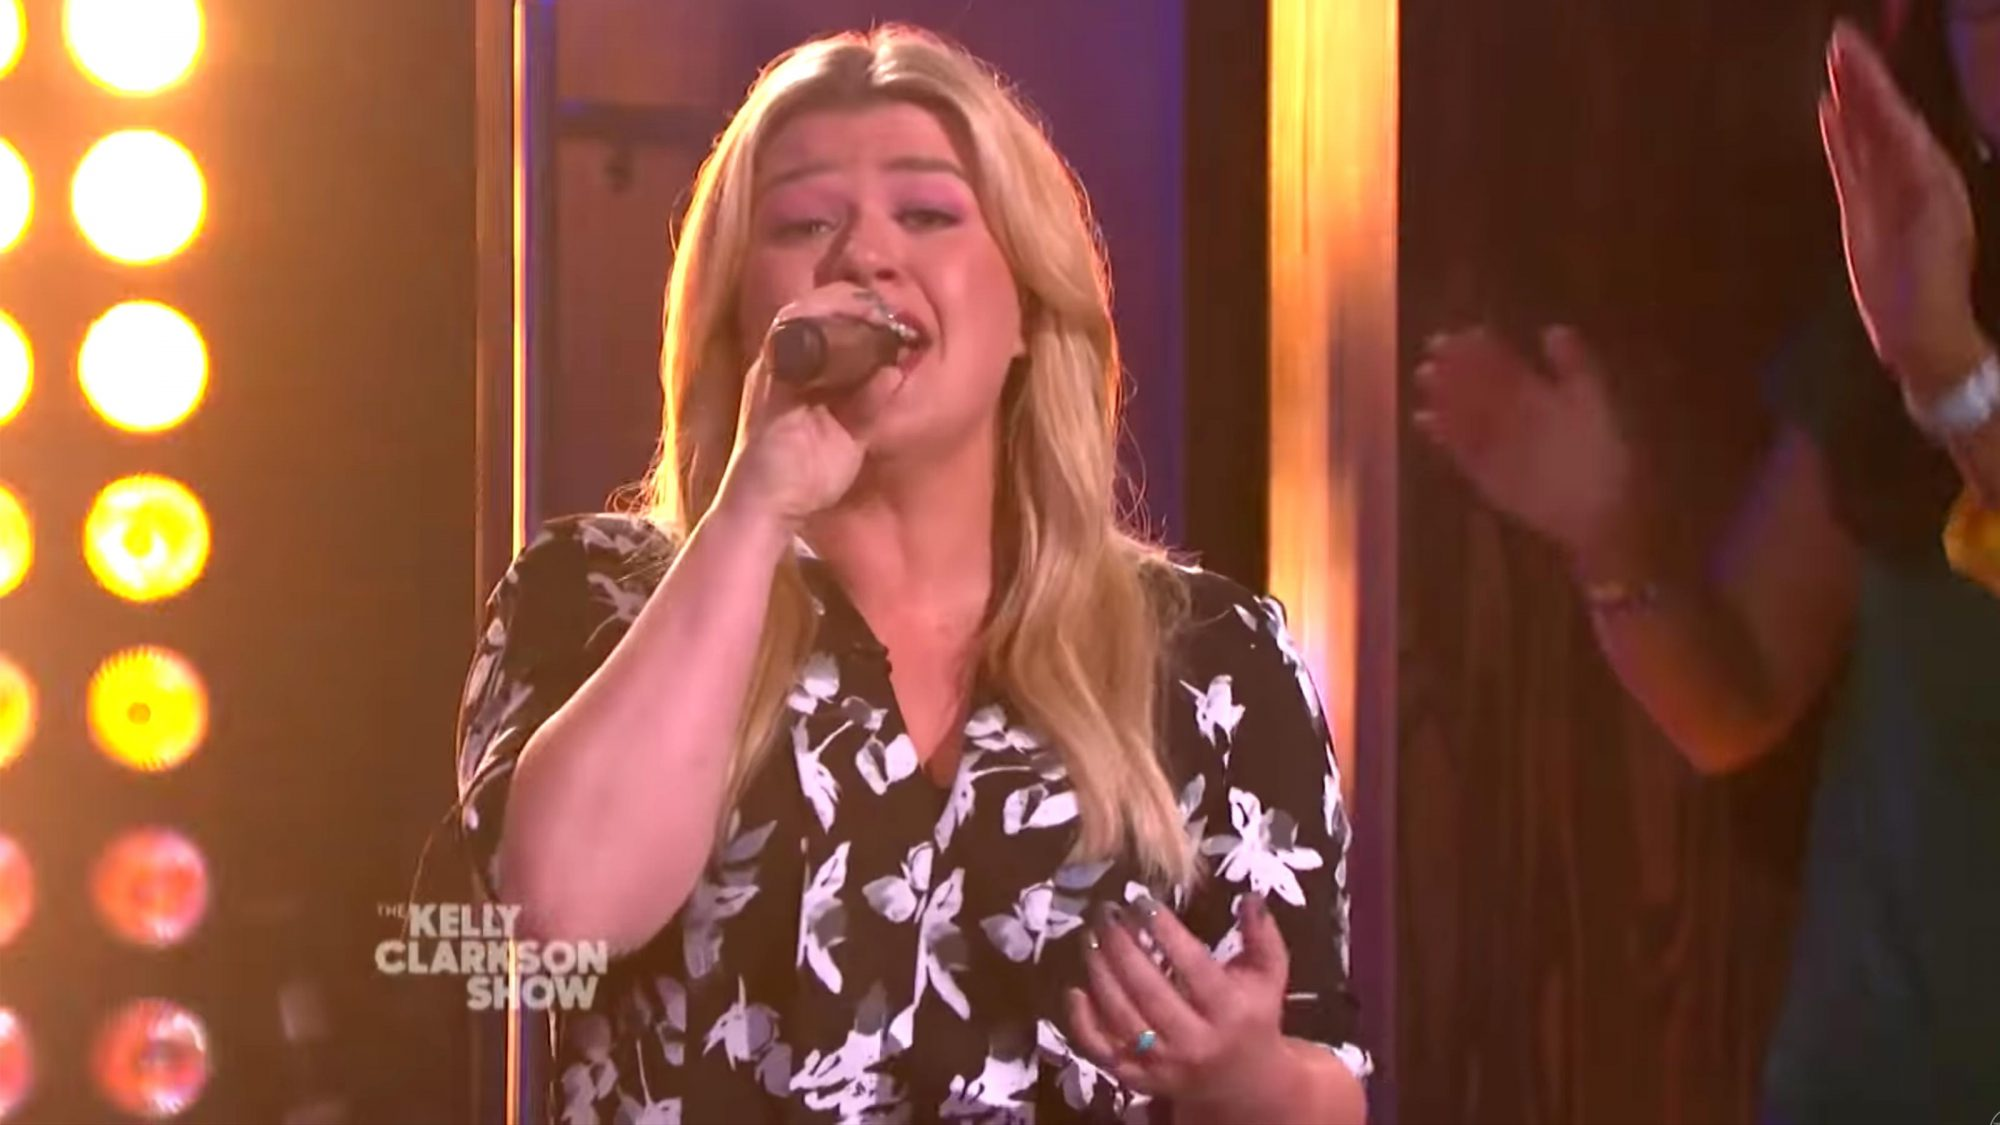 Ain't No Other Man (Christina Aguilera Cover) | Kellyoke | The Kelly Clarkson Show (screen grab) https://www.youtube.com/watch?v=QCGx_0IU_00 CR: NBC